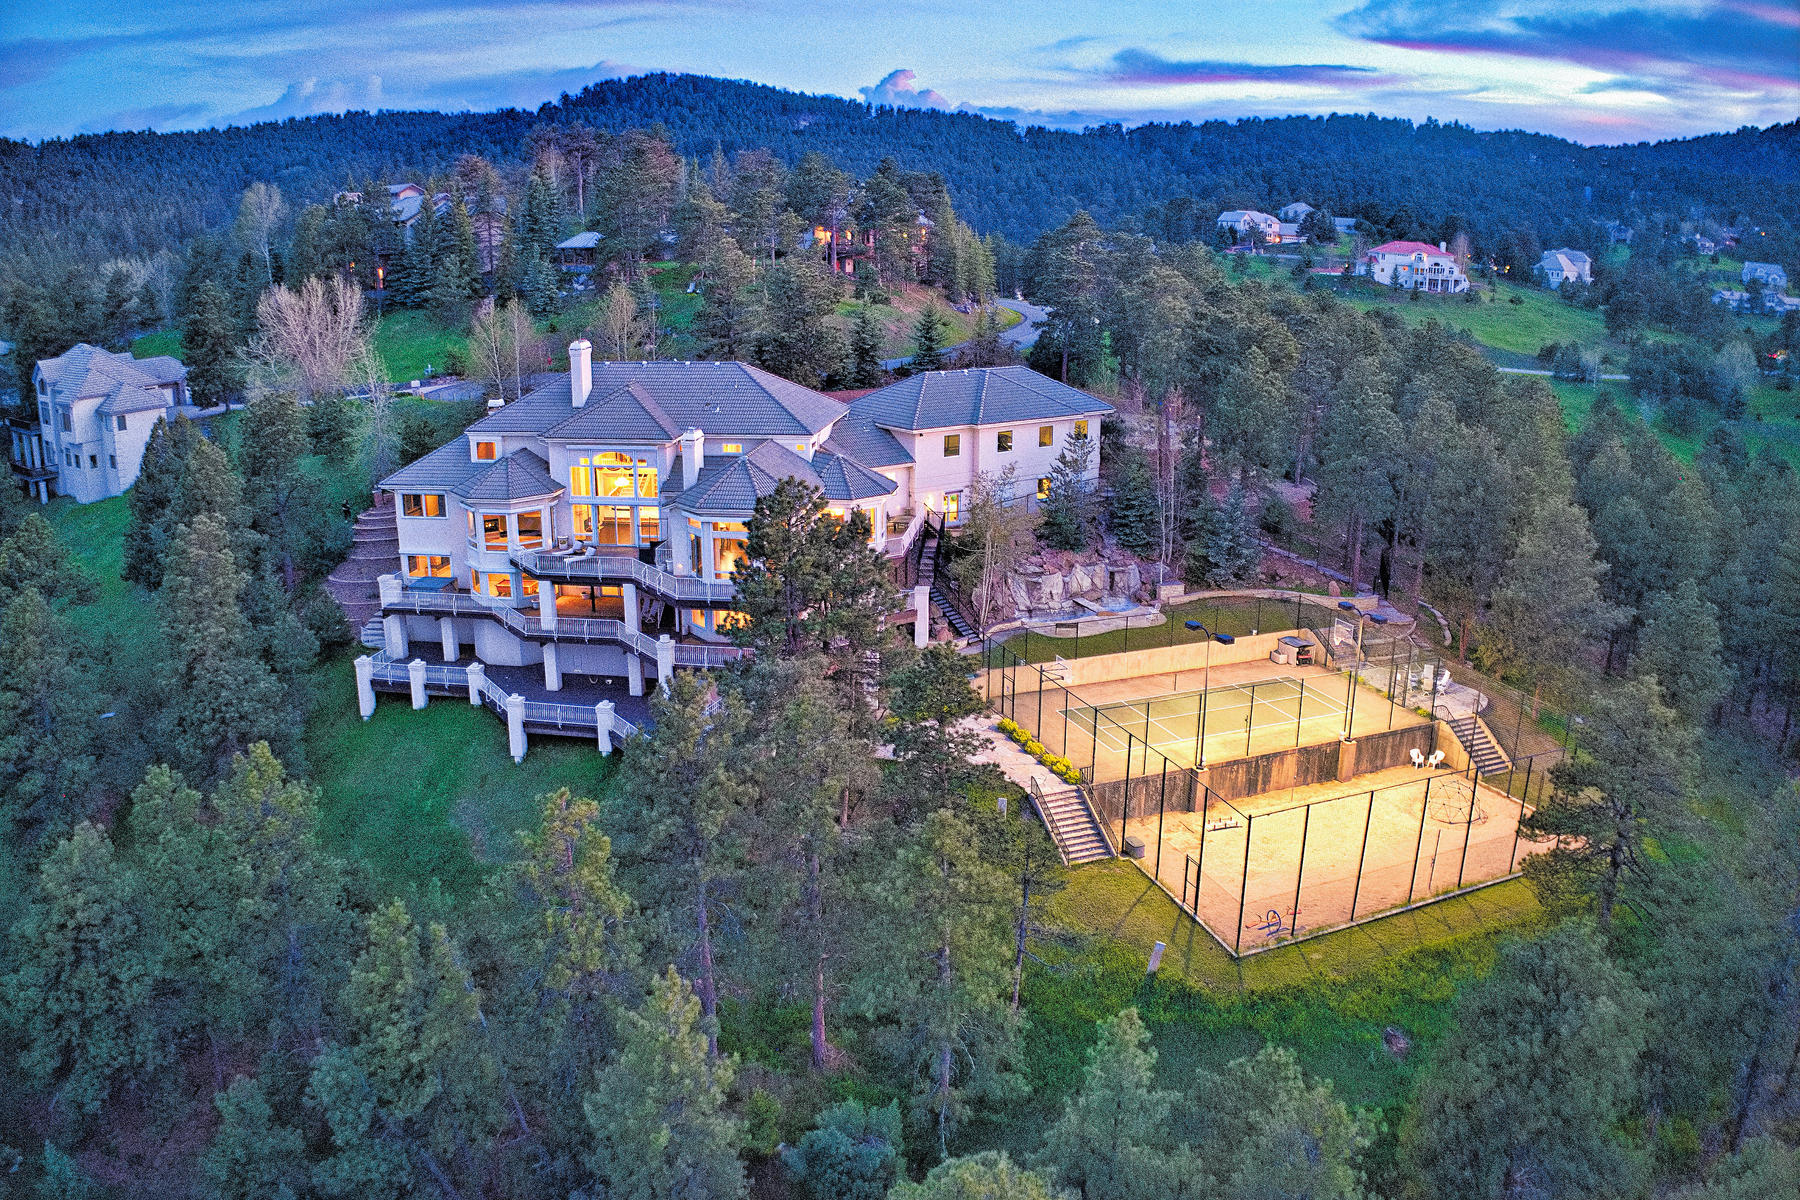 Single Family Home for Sale at Spectacular Estate with Complete Privacy & Panoramic Views 1003 Star Ridge Road Golden, Colorado 80401 United States